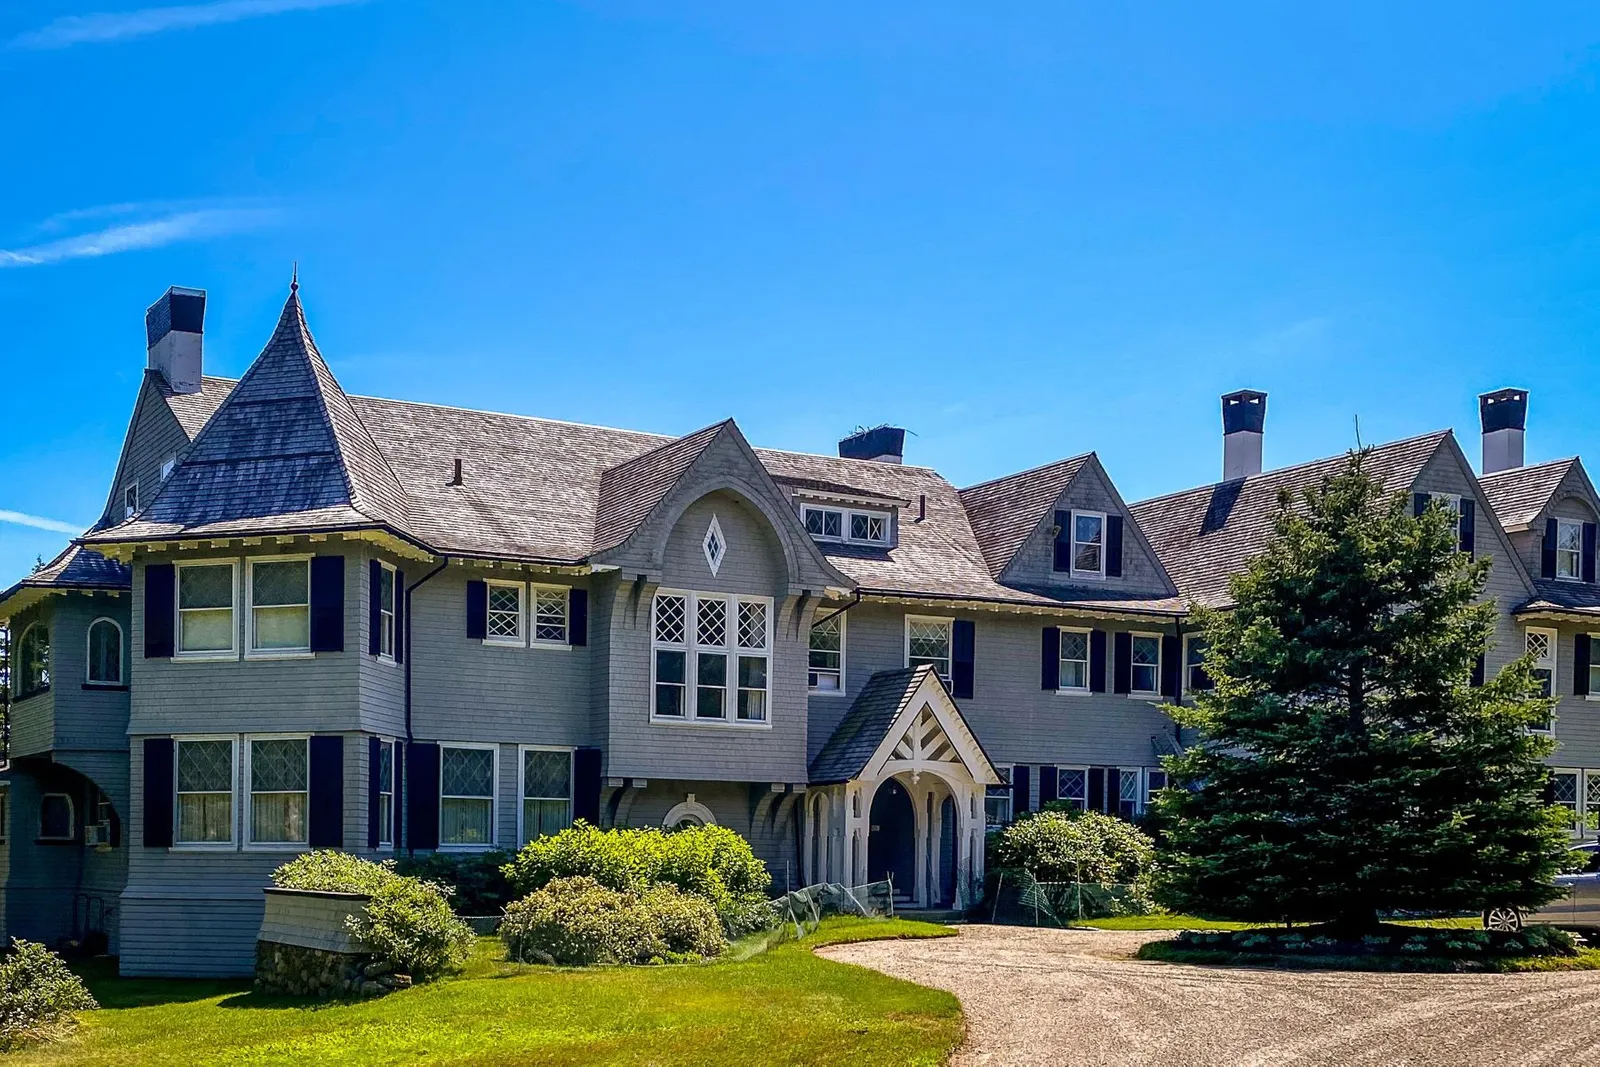 John Travolta's wonderful mansion in Isleboro Maine on the market.